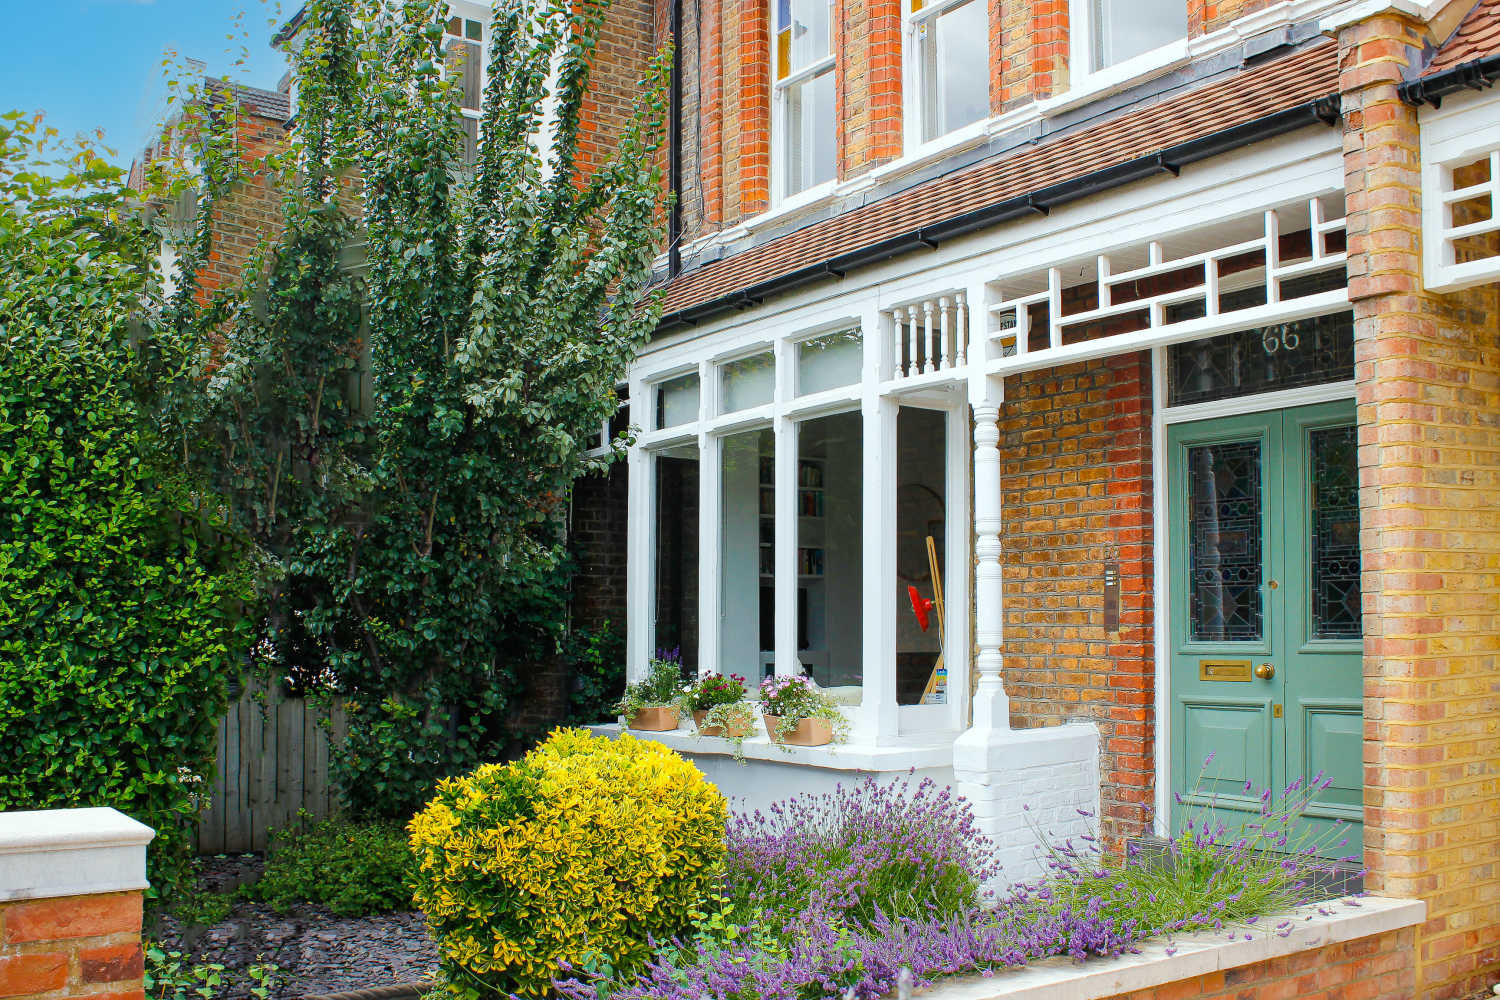 Edwardian three bedroom flat conversion home in Harringay with flowers and a green front door